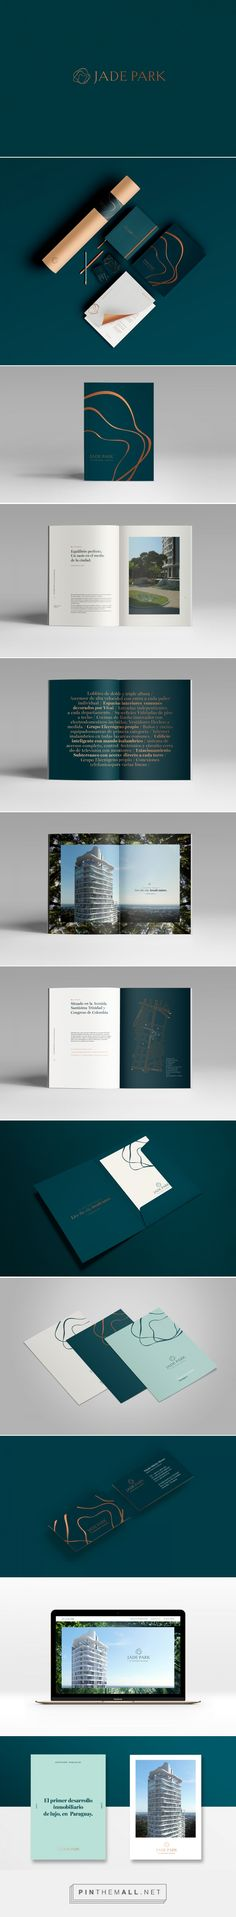 Jade Park Branding on Behance | Fivestar Branding – Design and Branding Agency…